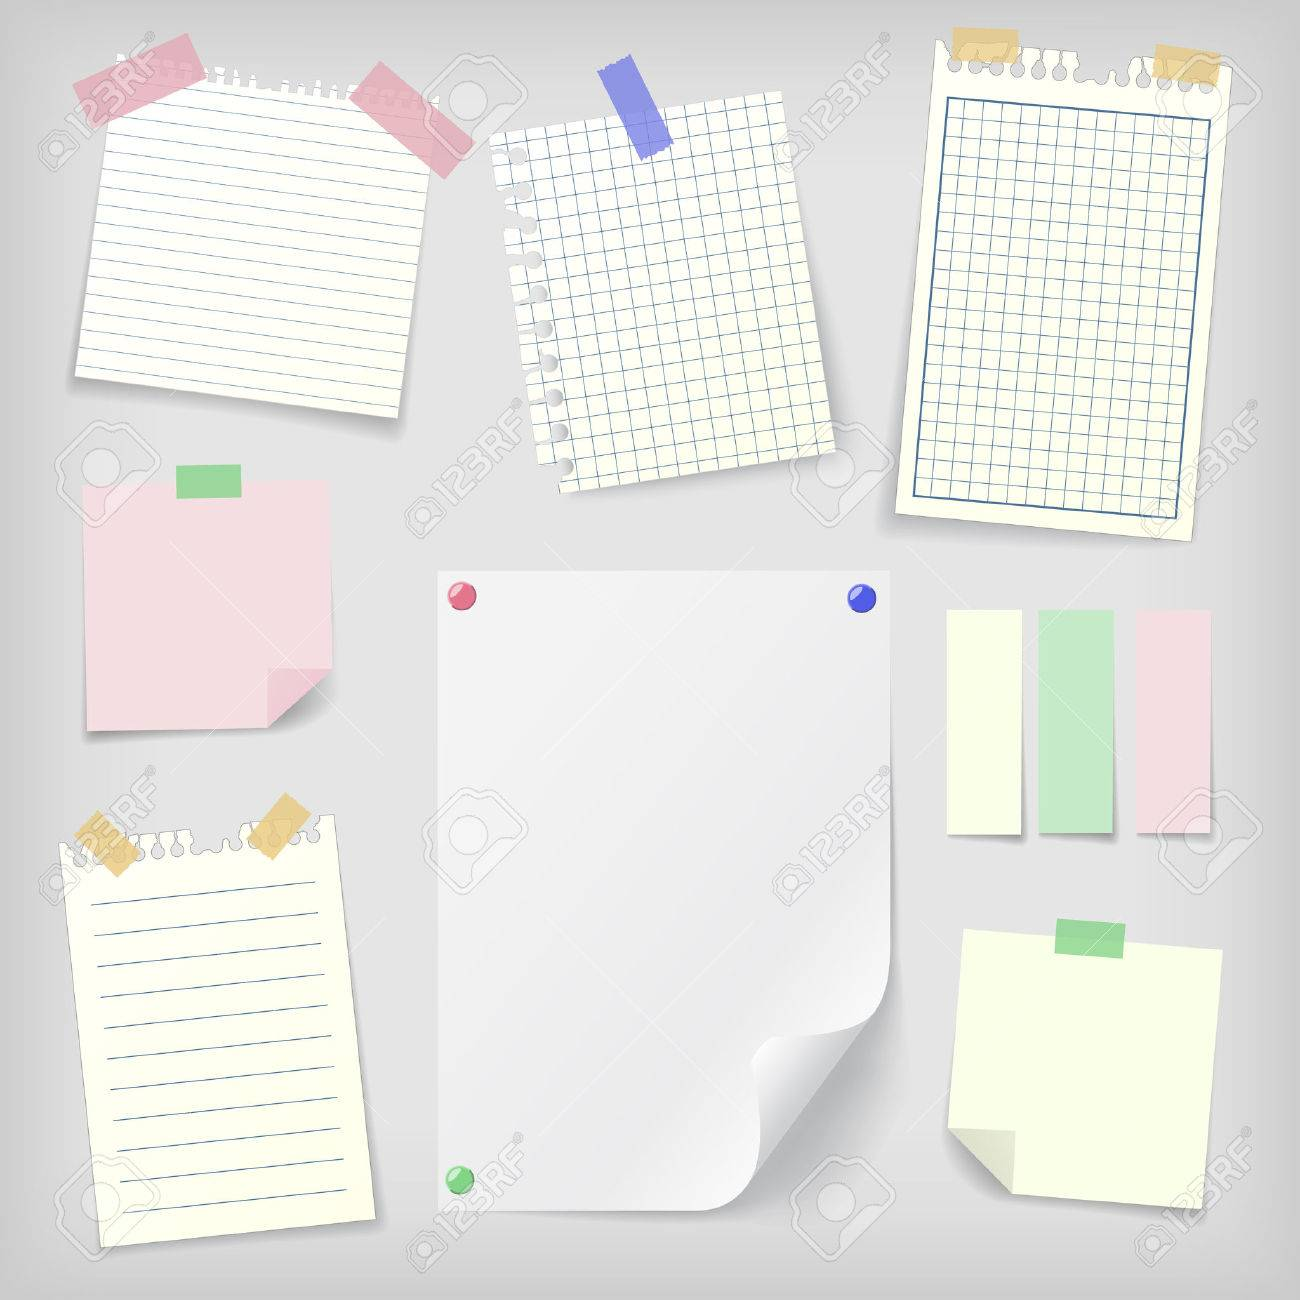 Free vector graphic sticky note note info paper free image on - Vector Sticky Notes Set Of Realistic Sticky Notes Lined And Squared Notebook Papers And Blank Sheet Mock Up With Pins And Stickers Place For Text